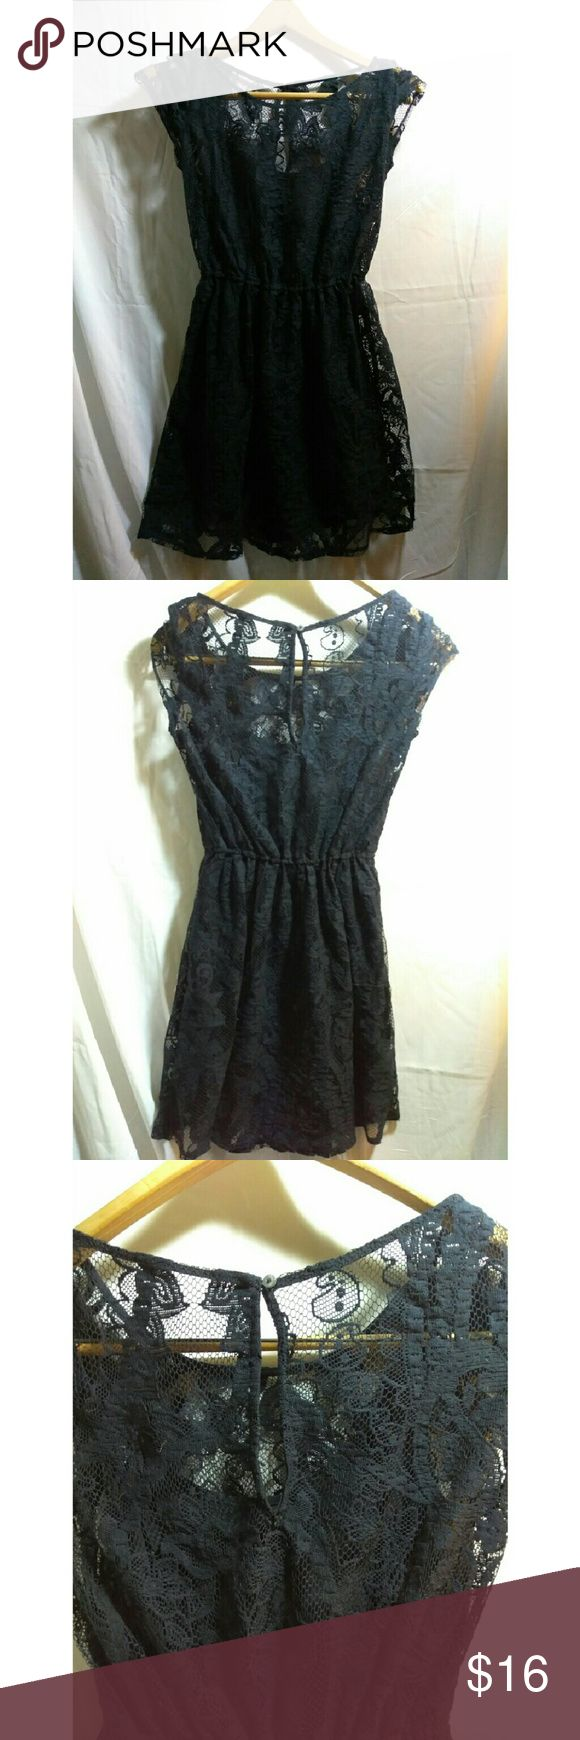 Little black lace dress small Barely worn See pictures for condition Black slip and lace  Small Hollister Adorable little black dress  Comment with questions Offer button for offers  :) Hollister Dresses